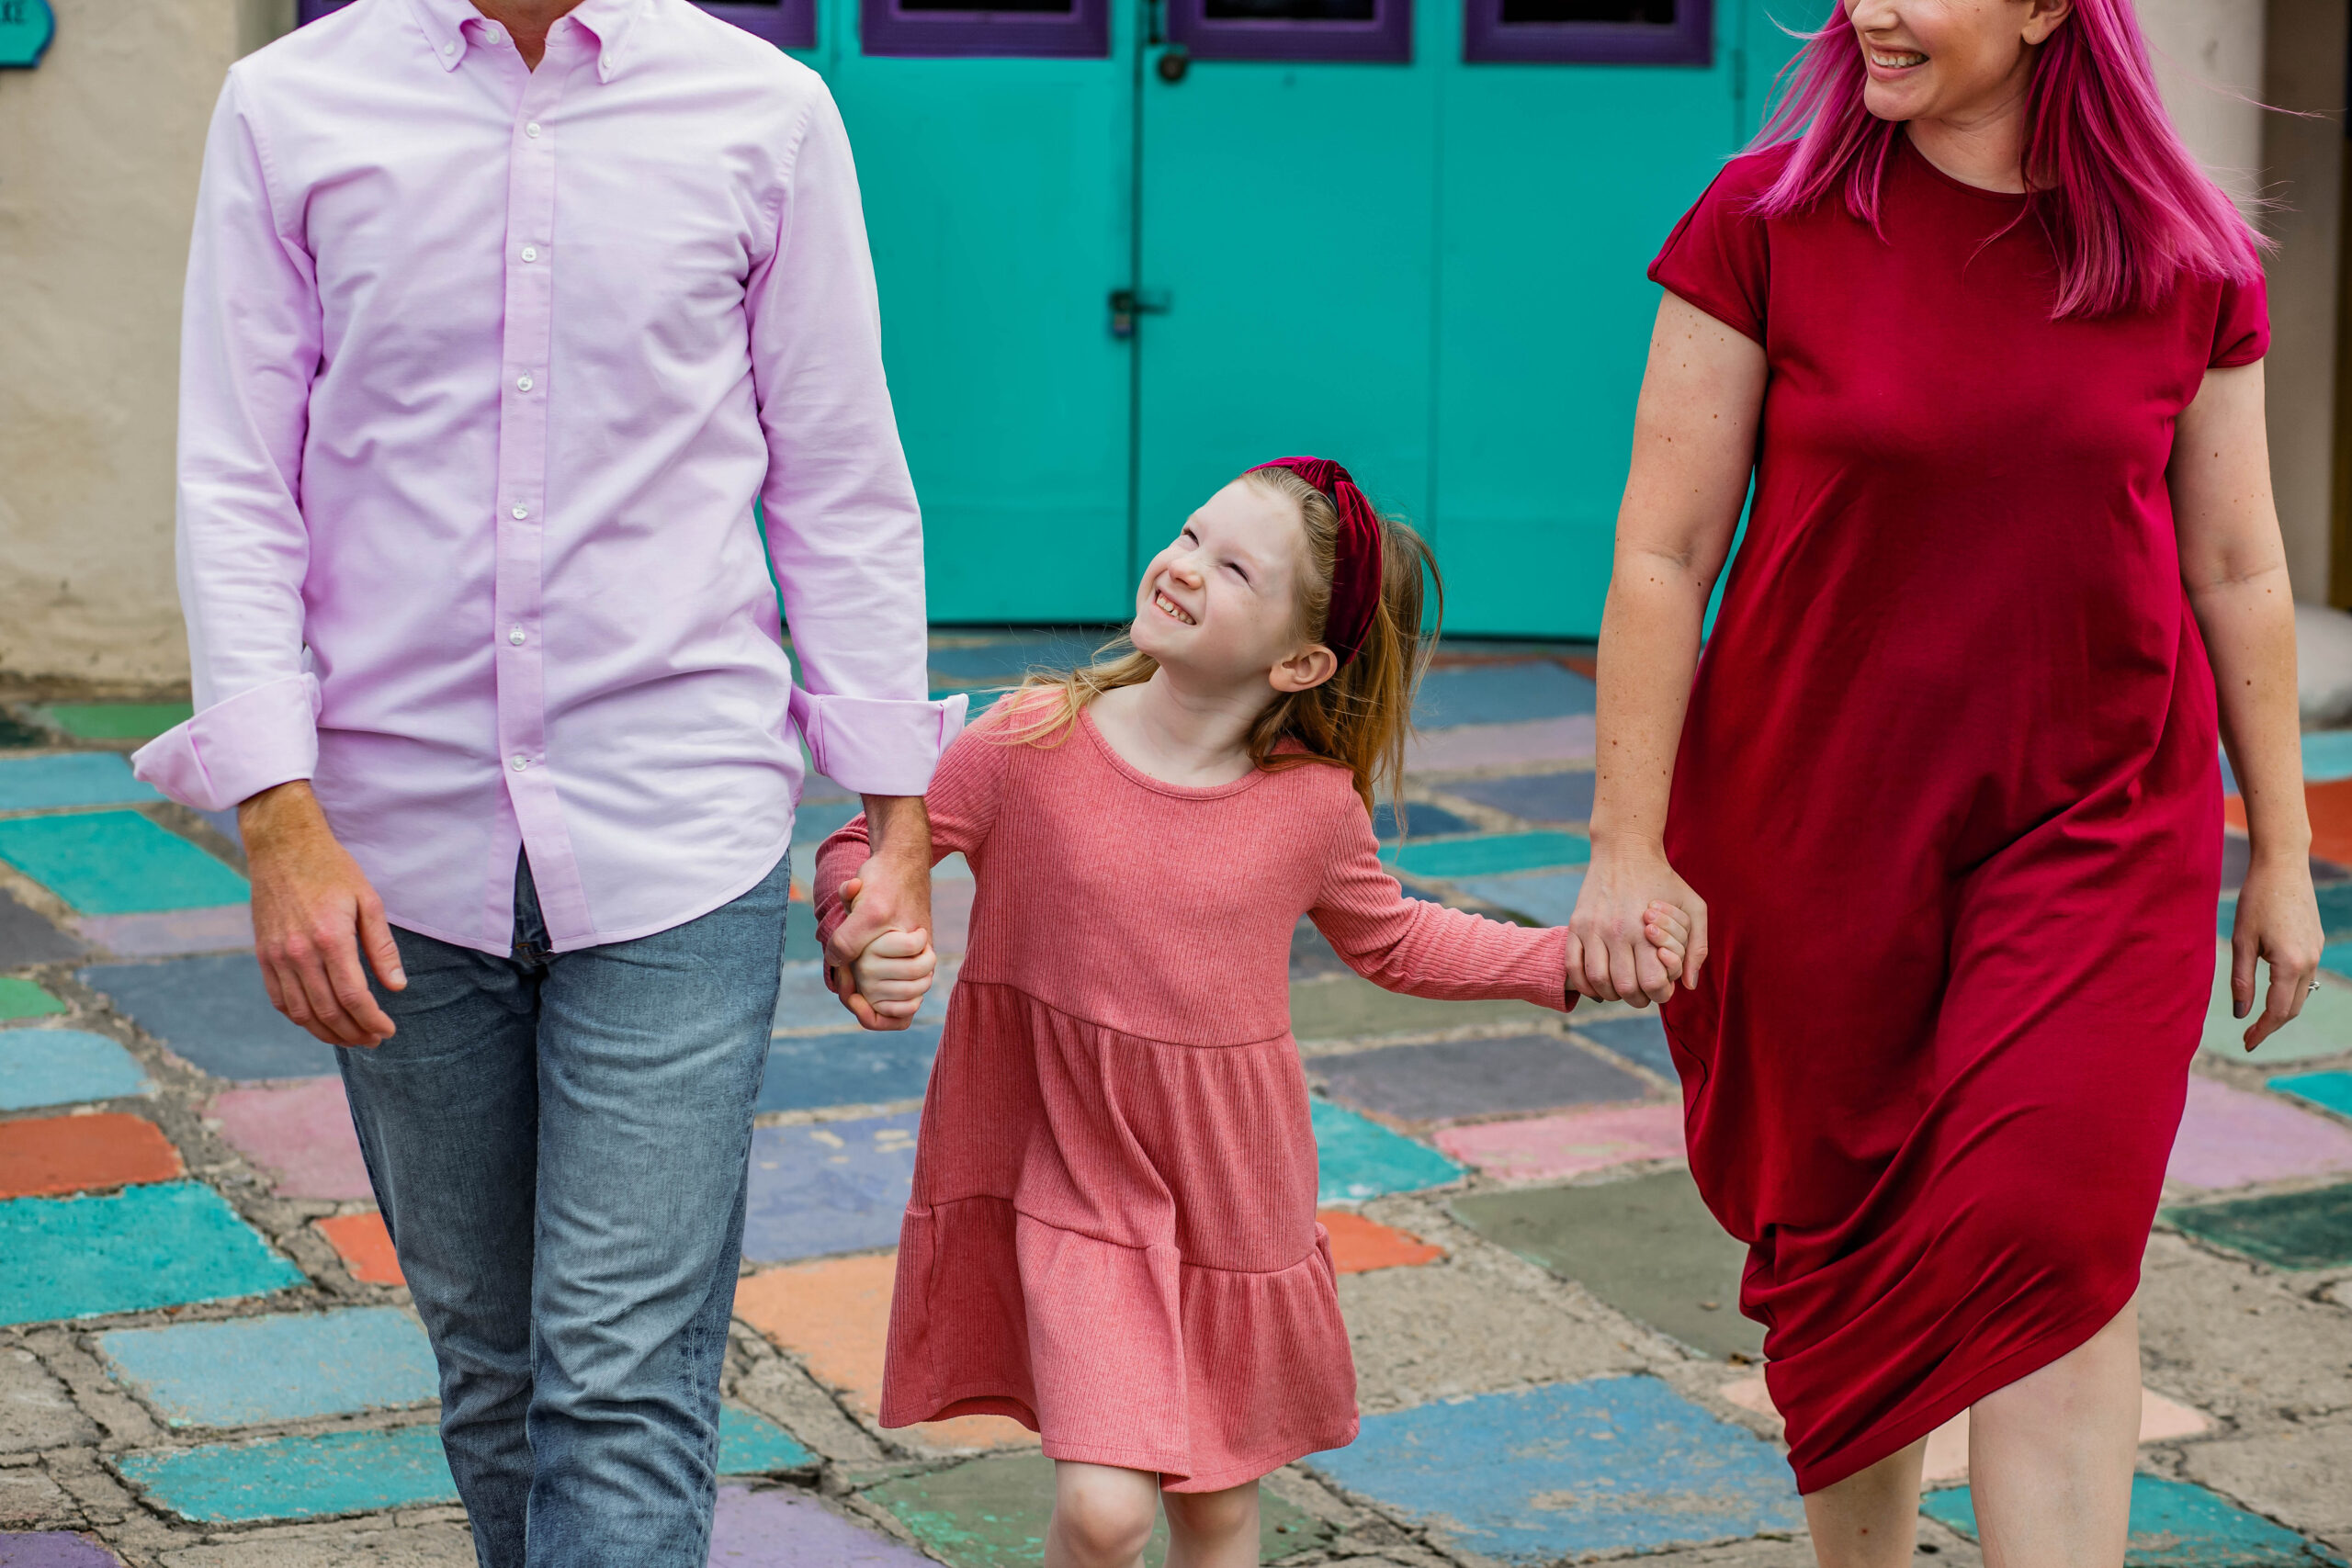 Planning to take spring family photos this year? These tips will make them easy as pie!